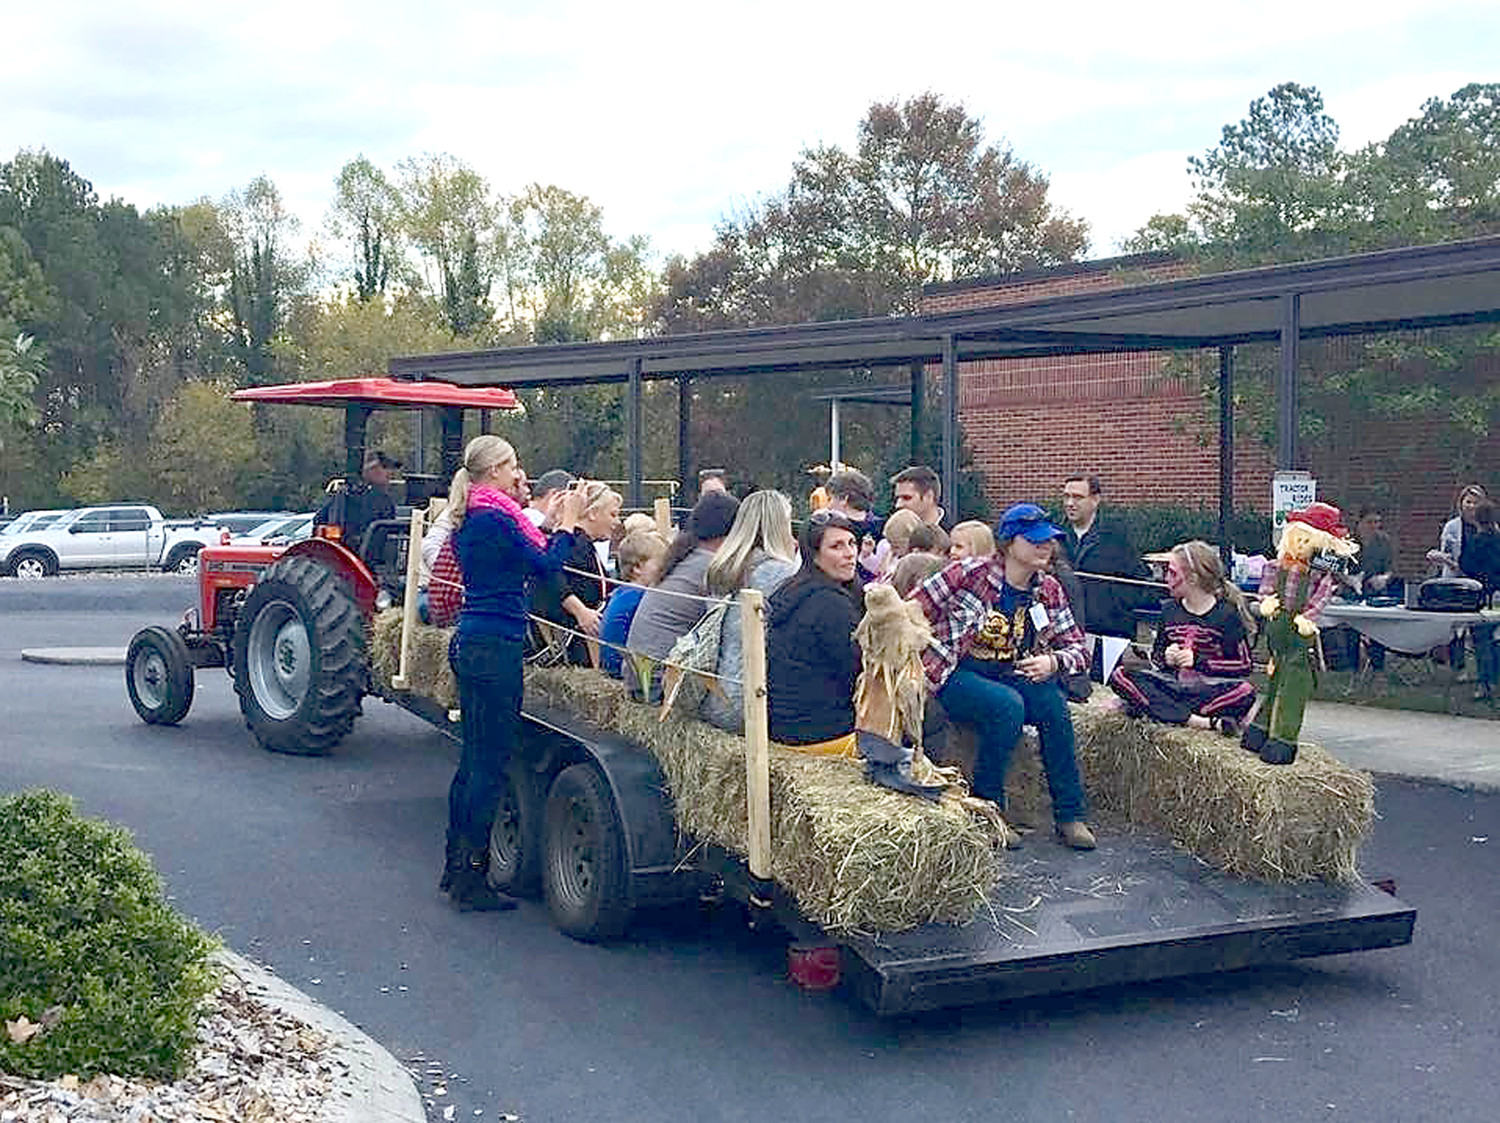 HAYRIDES provided by the Hughes family took trips from the cafeteria to the MAS Marketplace and to an area where the school's church partner, Michigan Avenue Baptist, provided free inflatables.